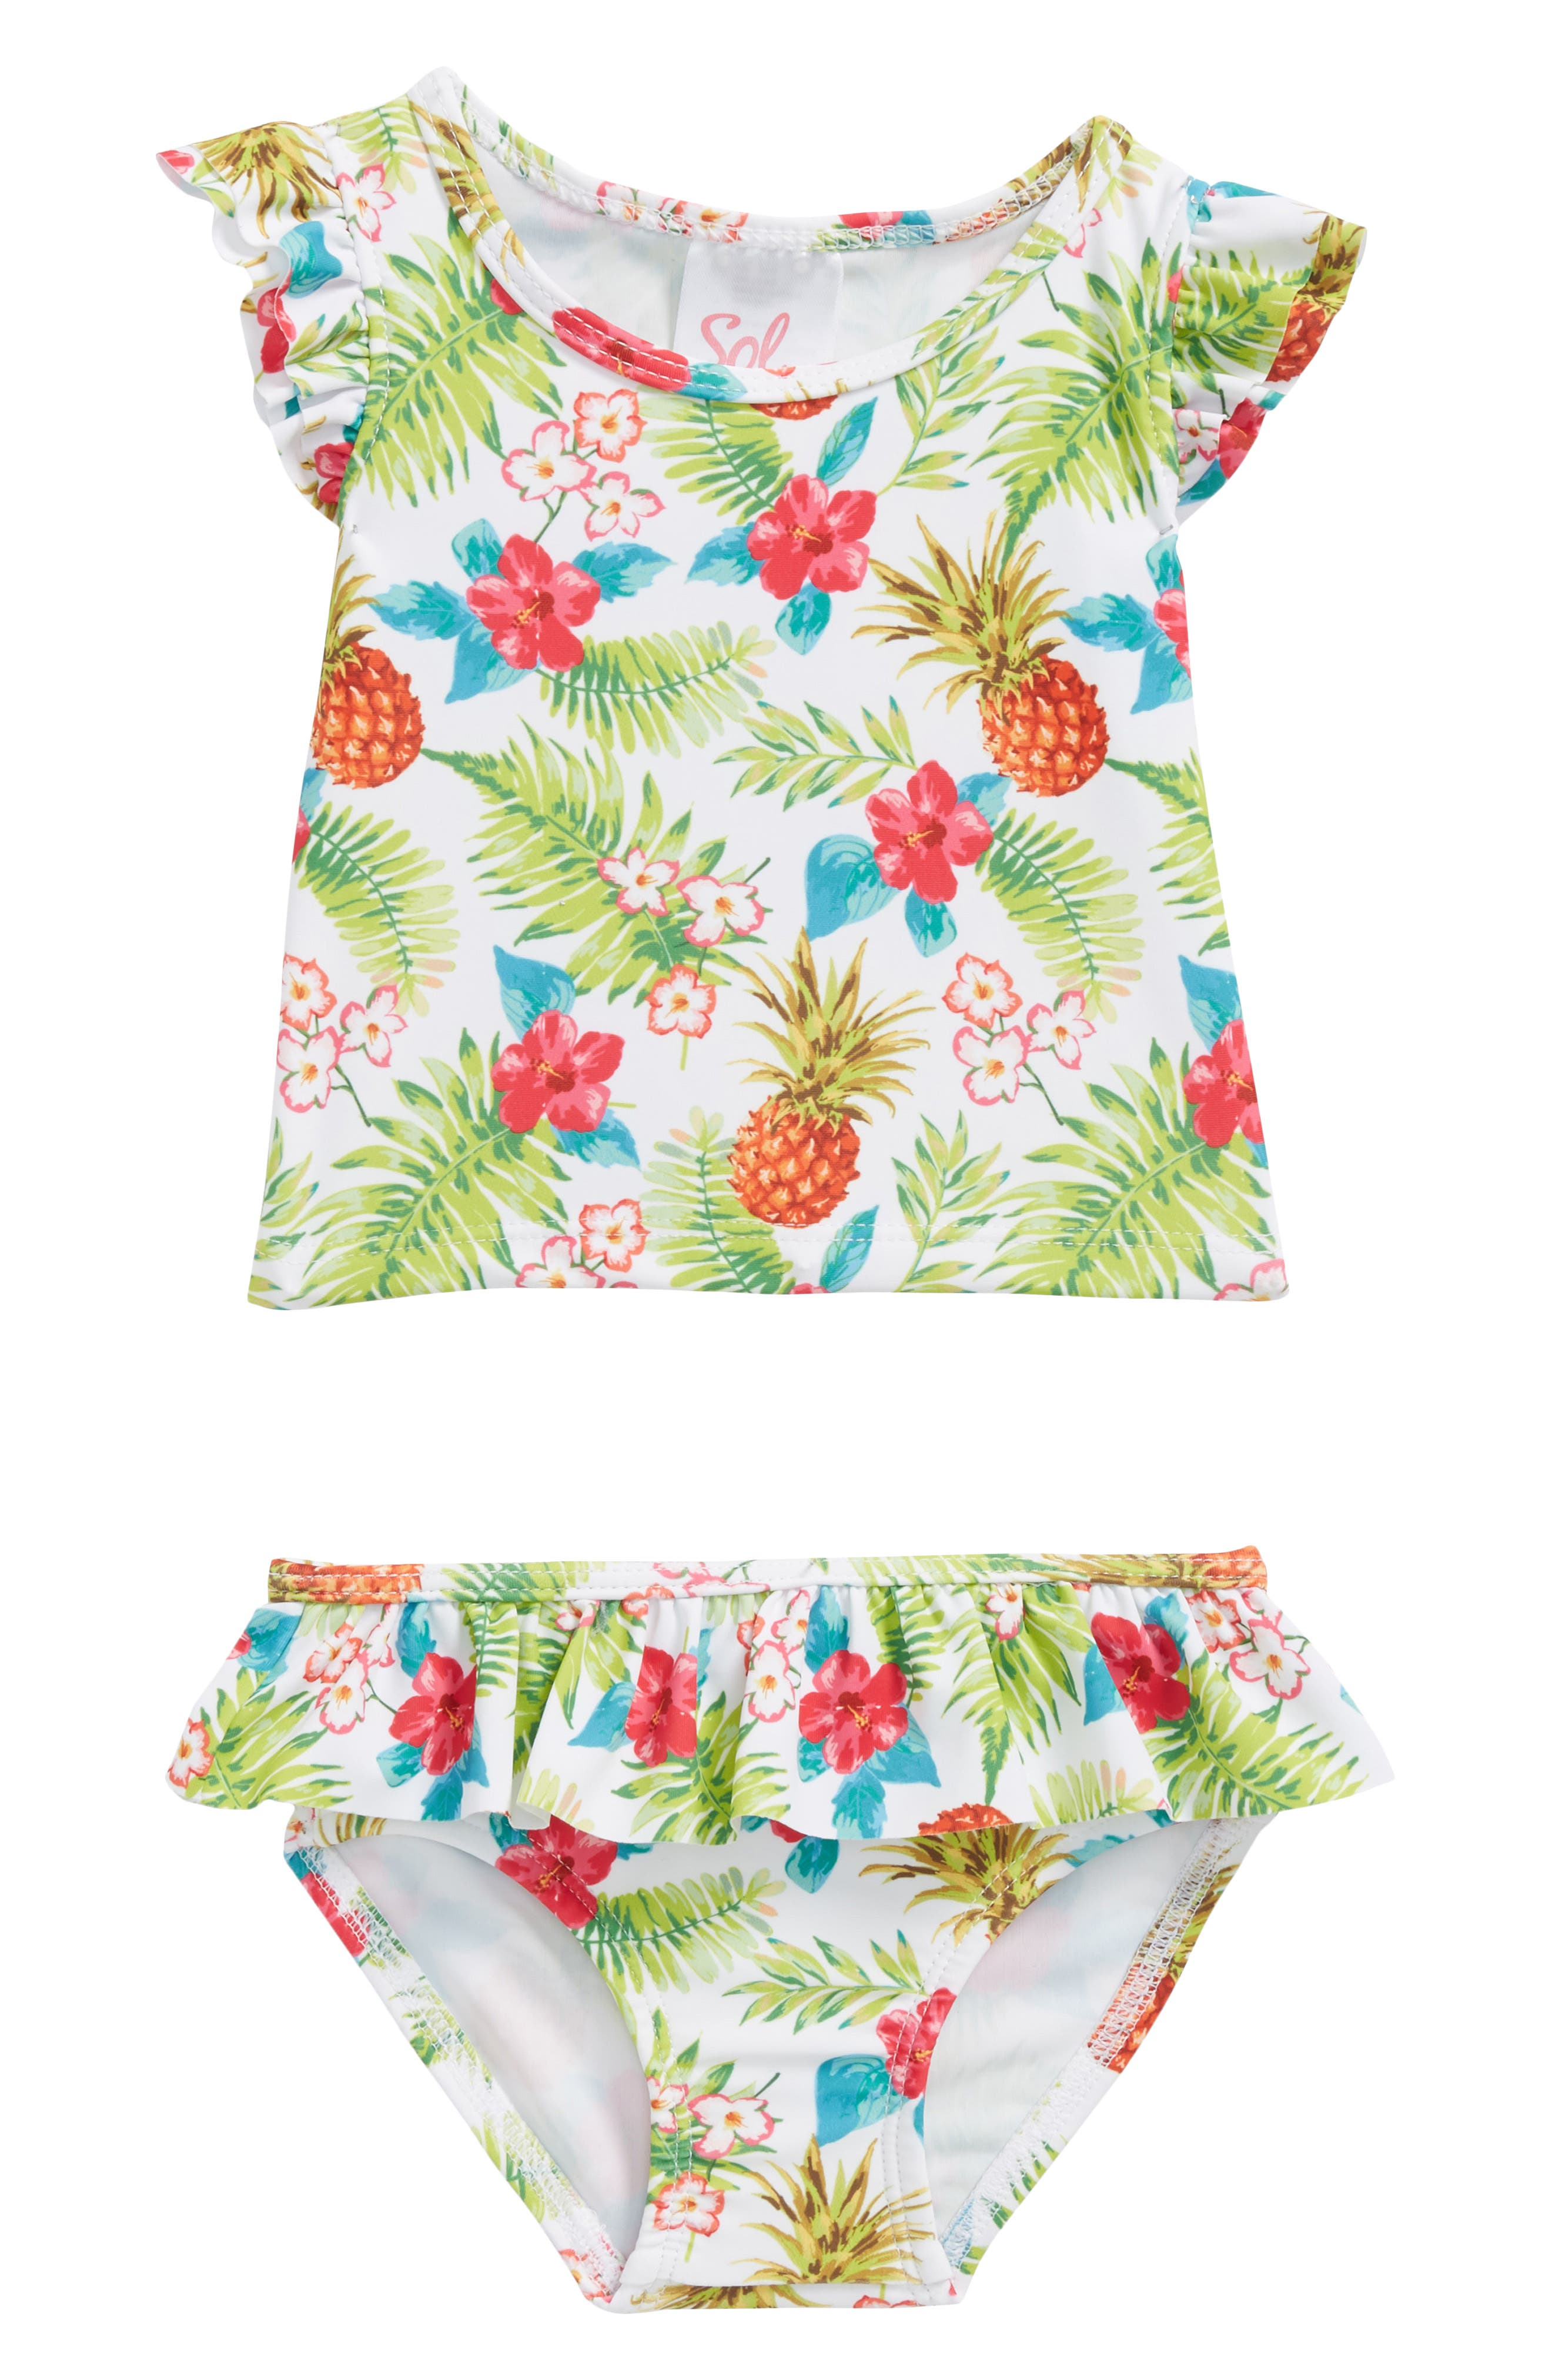 Tropical Holiday Two-Piece Swimsuit,                             Main thumbnail 1, color,                             300